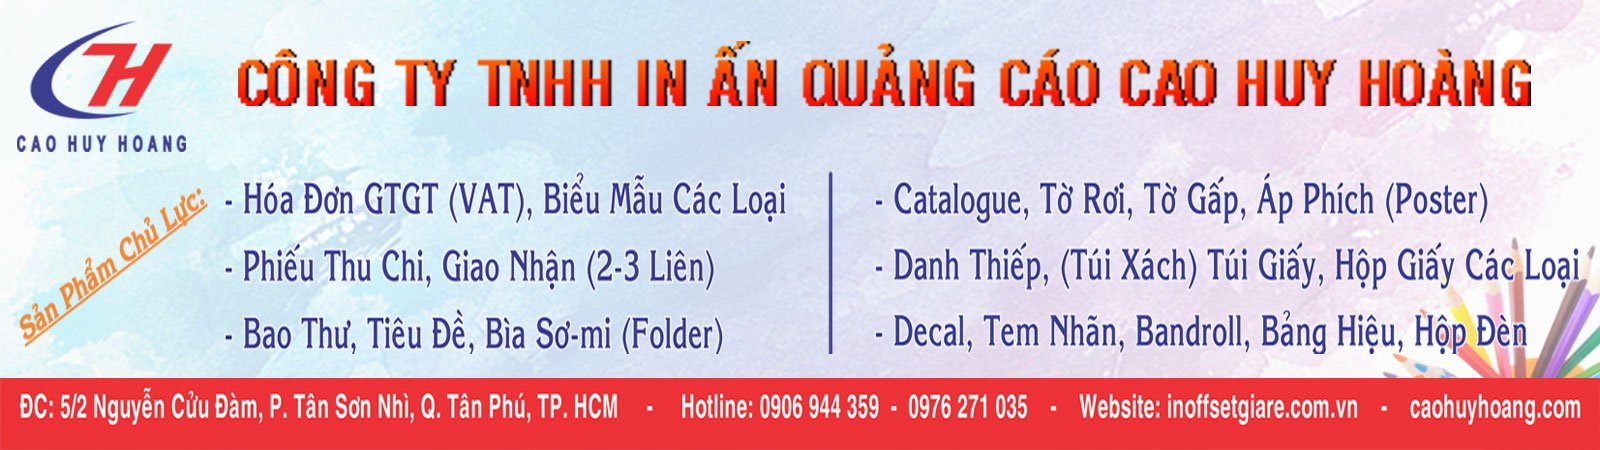 Banner in ấn Cao Huy Hoàng 6